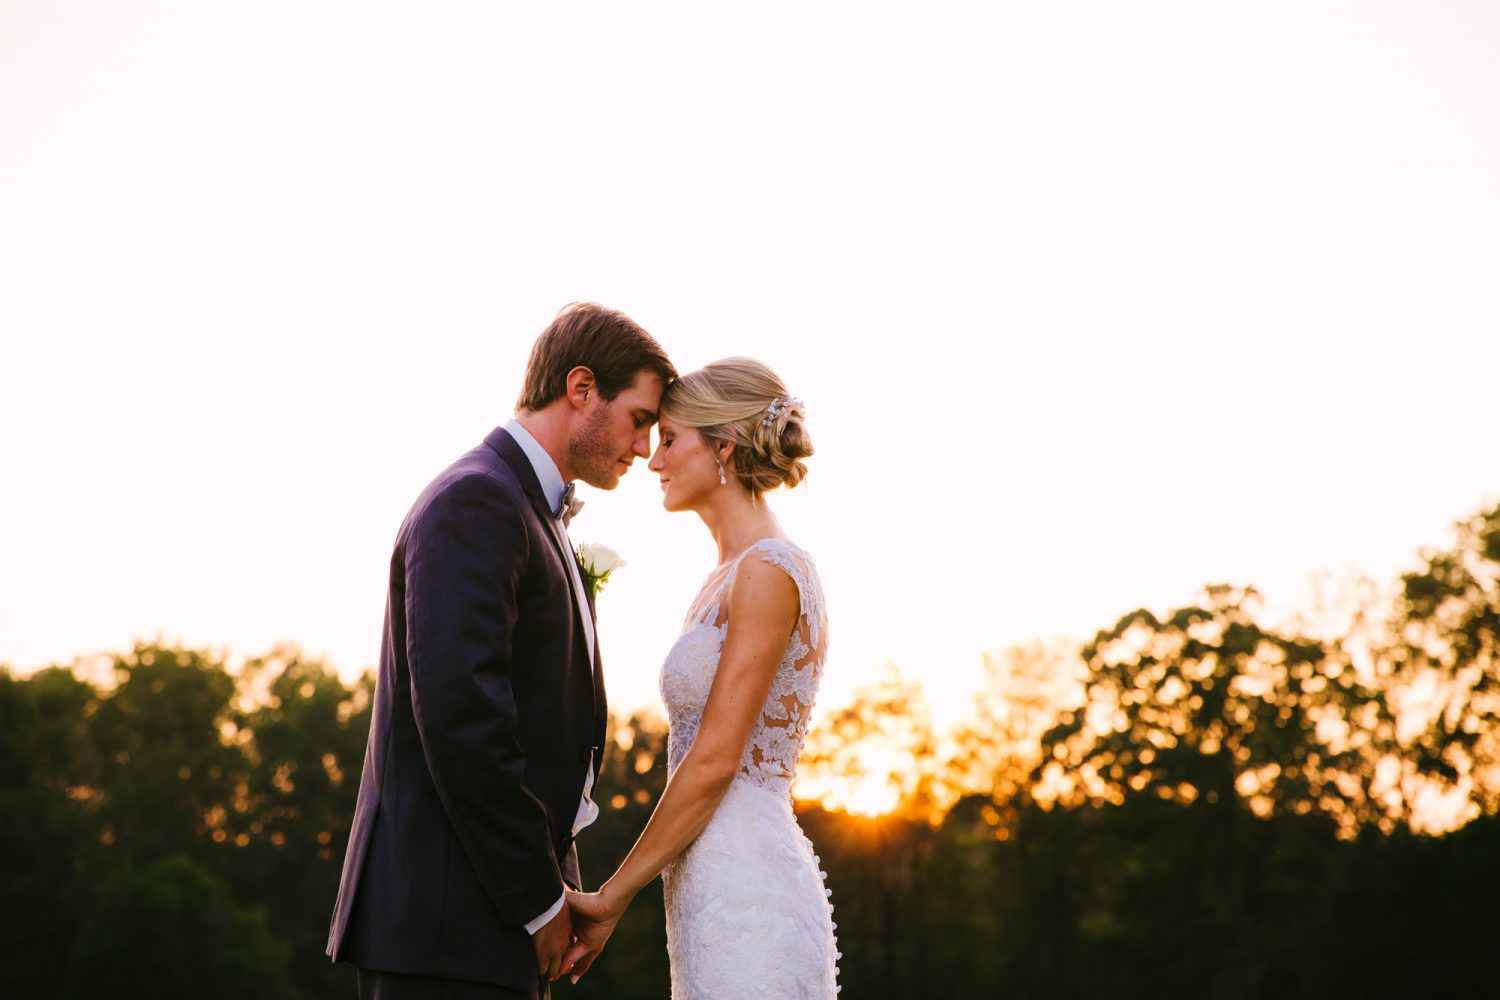 Waynesville, NC Wedding Photography | Bride and Groom a Quiet Moment at Sunset